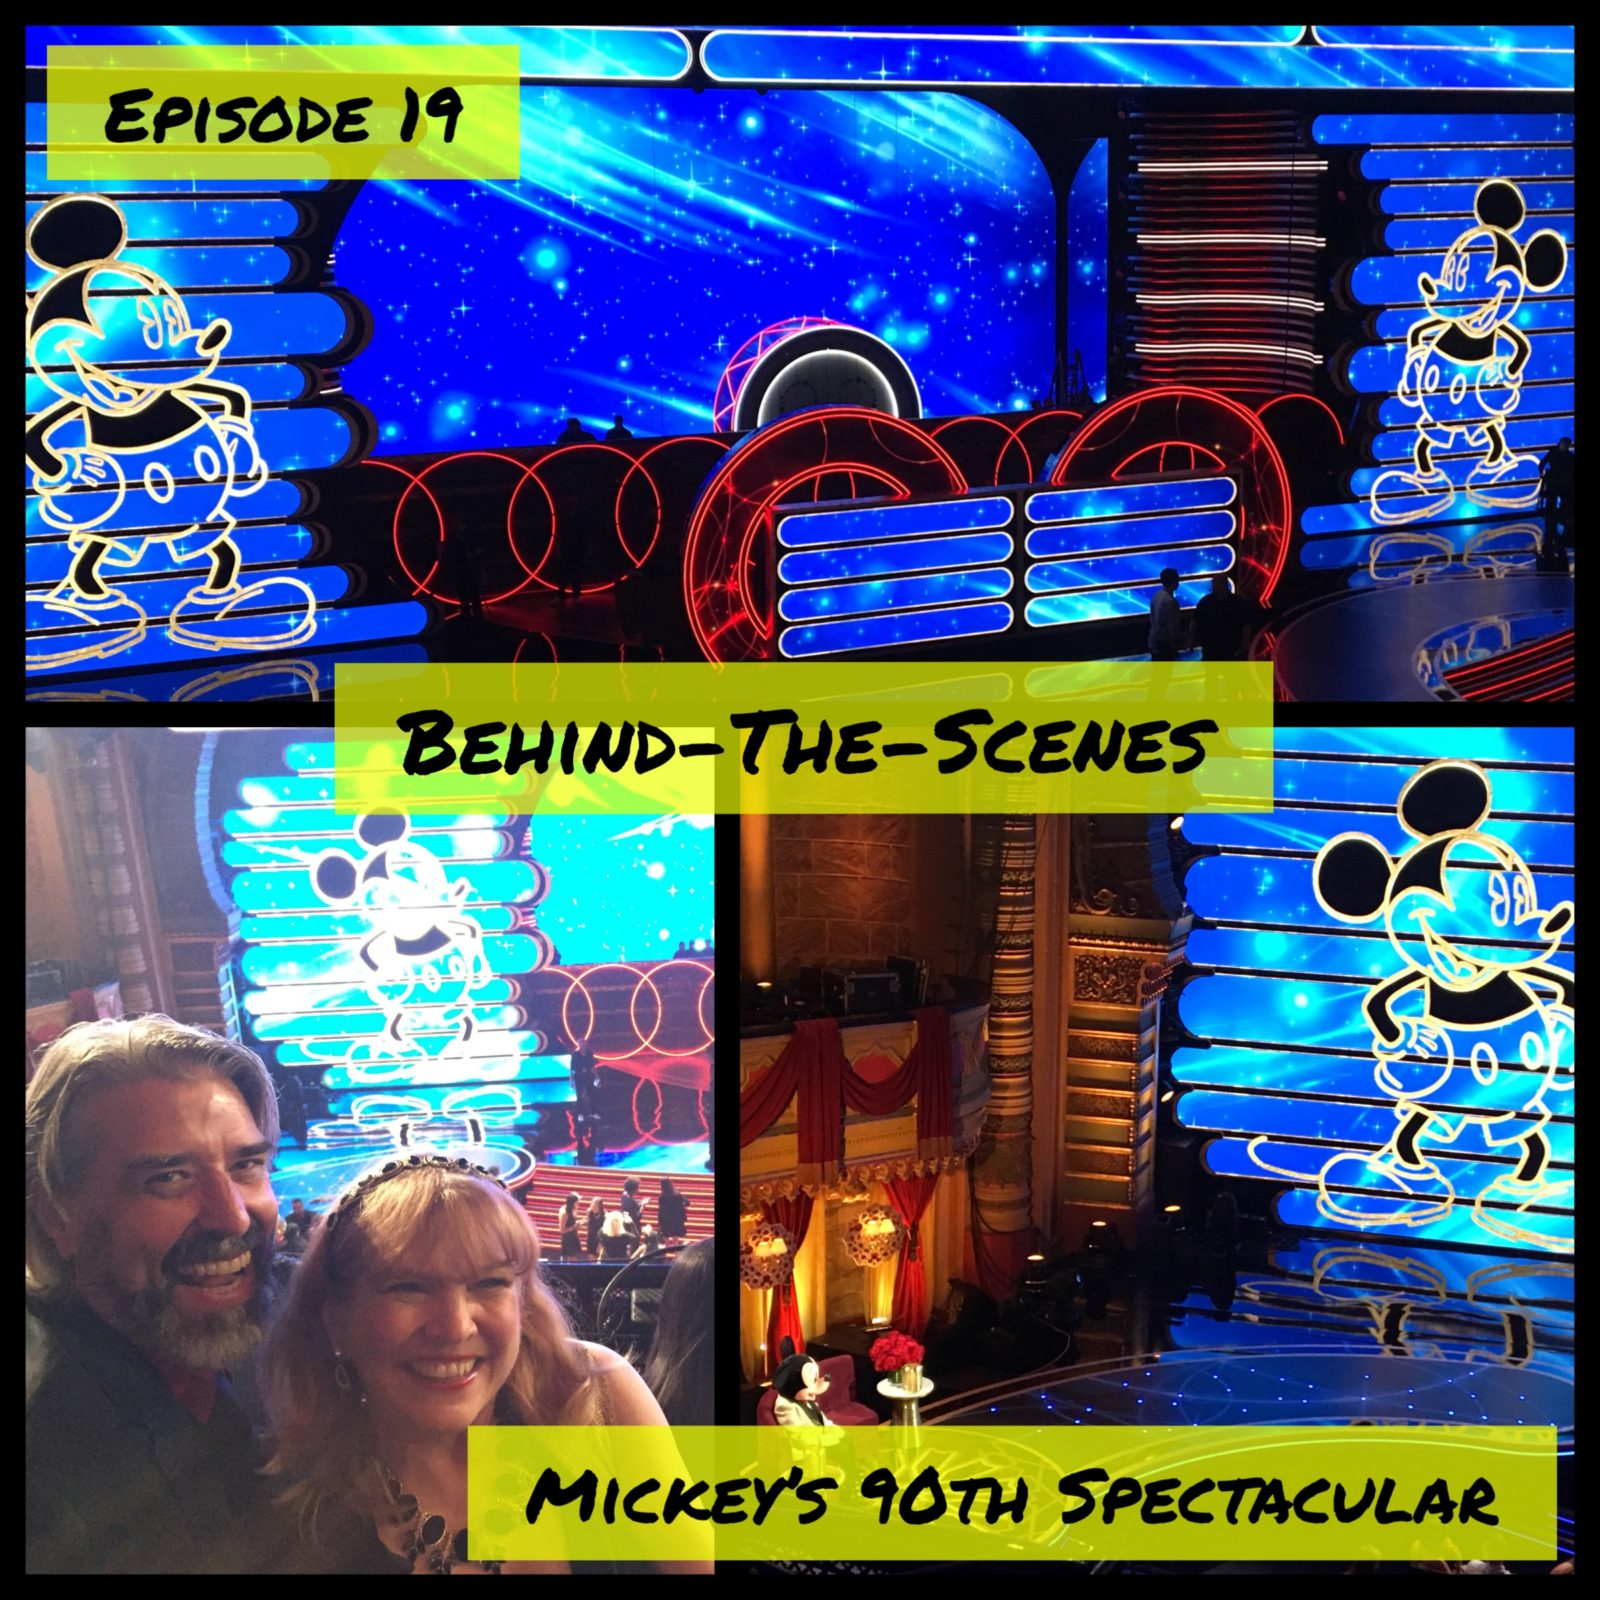 Episode 19 - Behind-the-Scenes at Mickey's 90th Spectacular